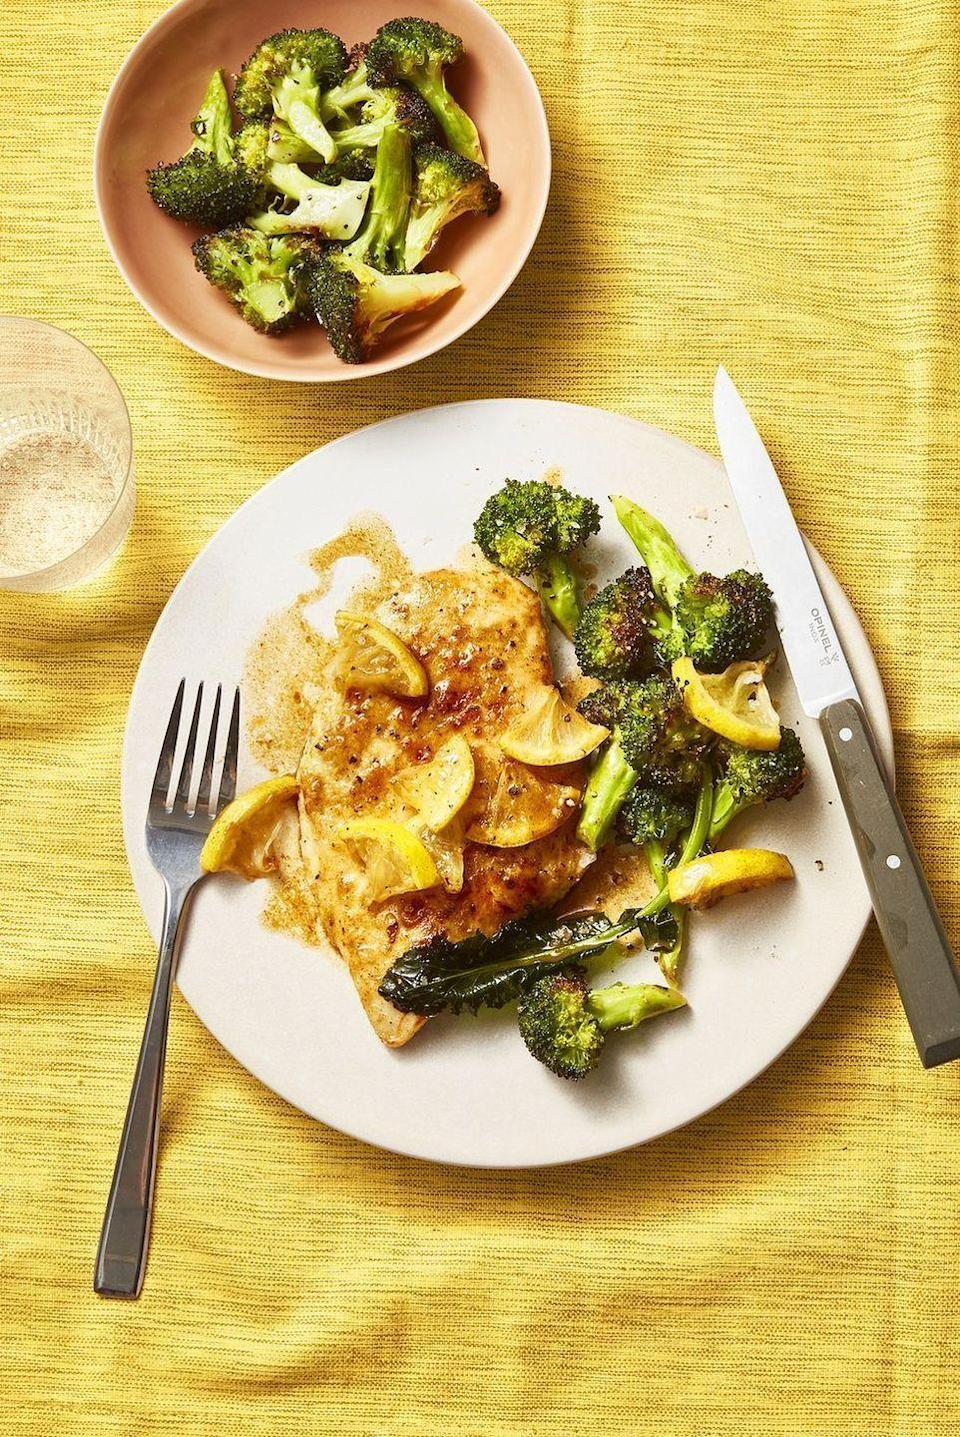 """<p>There's a good chance you already have all the ingredients you need for this easy weeknight dinner.</p><p><em><a href=""""https://www.goodhousekeeping.com/food-recipes/healthy/a28650977/pan-fried-chicken-roasted-broccoli-recipe/"""" rel=""""nofollow noopener"""" target=""""_blank"""" data-ylk=""""slk:Get the recipe for Pan-Fried Chicken with Lemony Roasted Broccoli »"""" class=""""link rapid-noclick-resp"""">Get the recipe for Pan-Fried Chicken with Lemony Roasted Broccoli »</a></em></p>"""